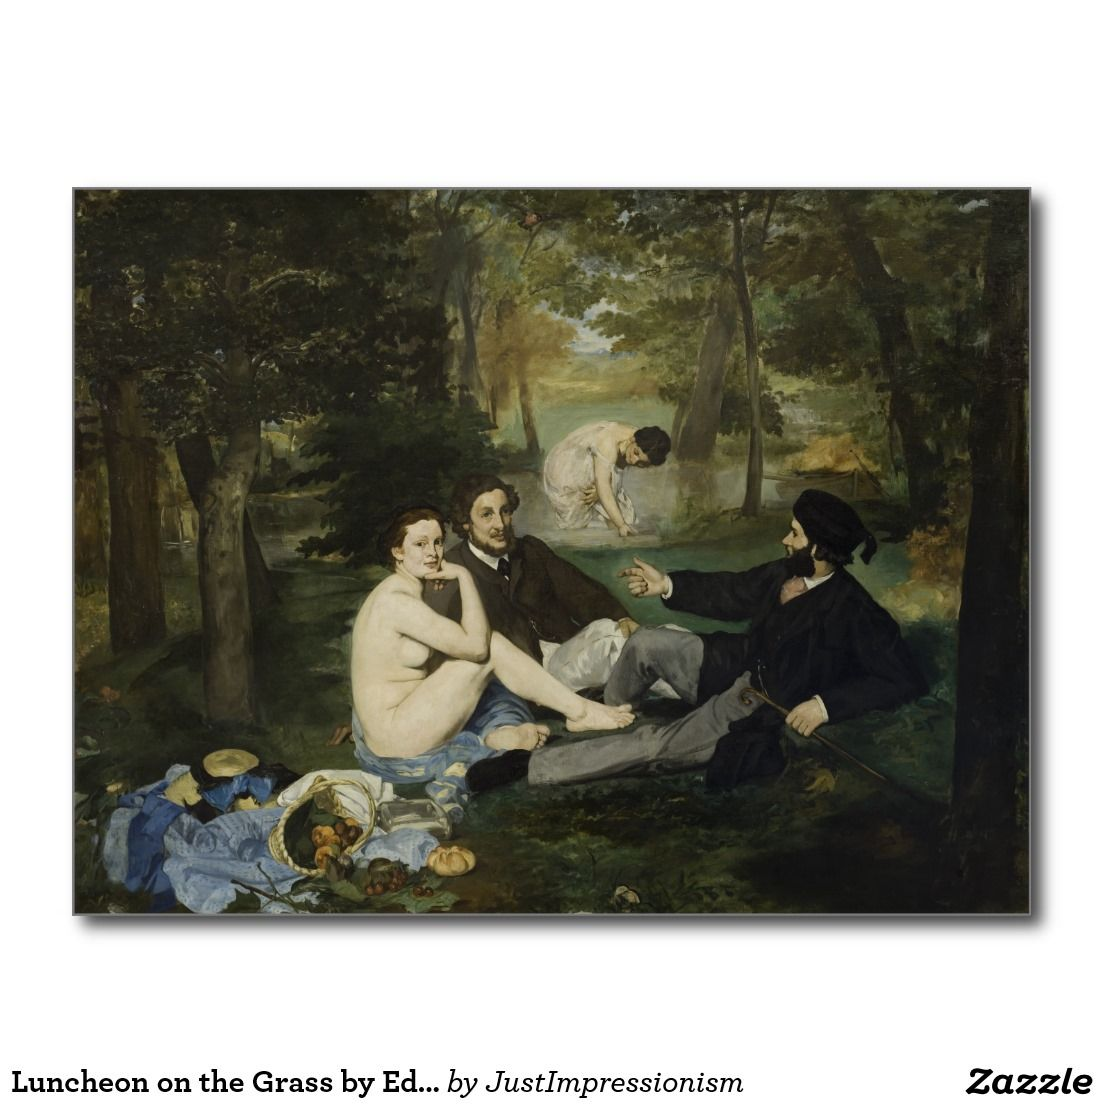 Luncheon on the Grass by Edouard Manet Postcard